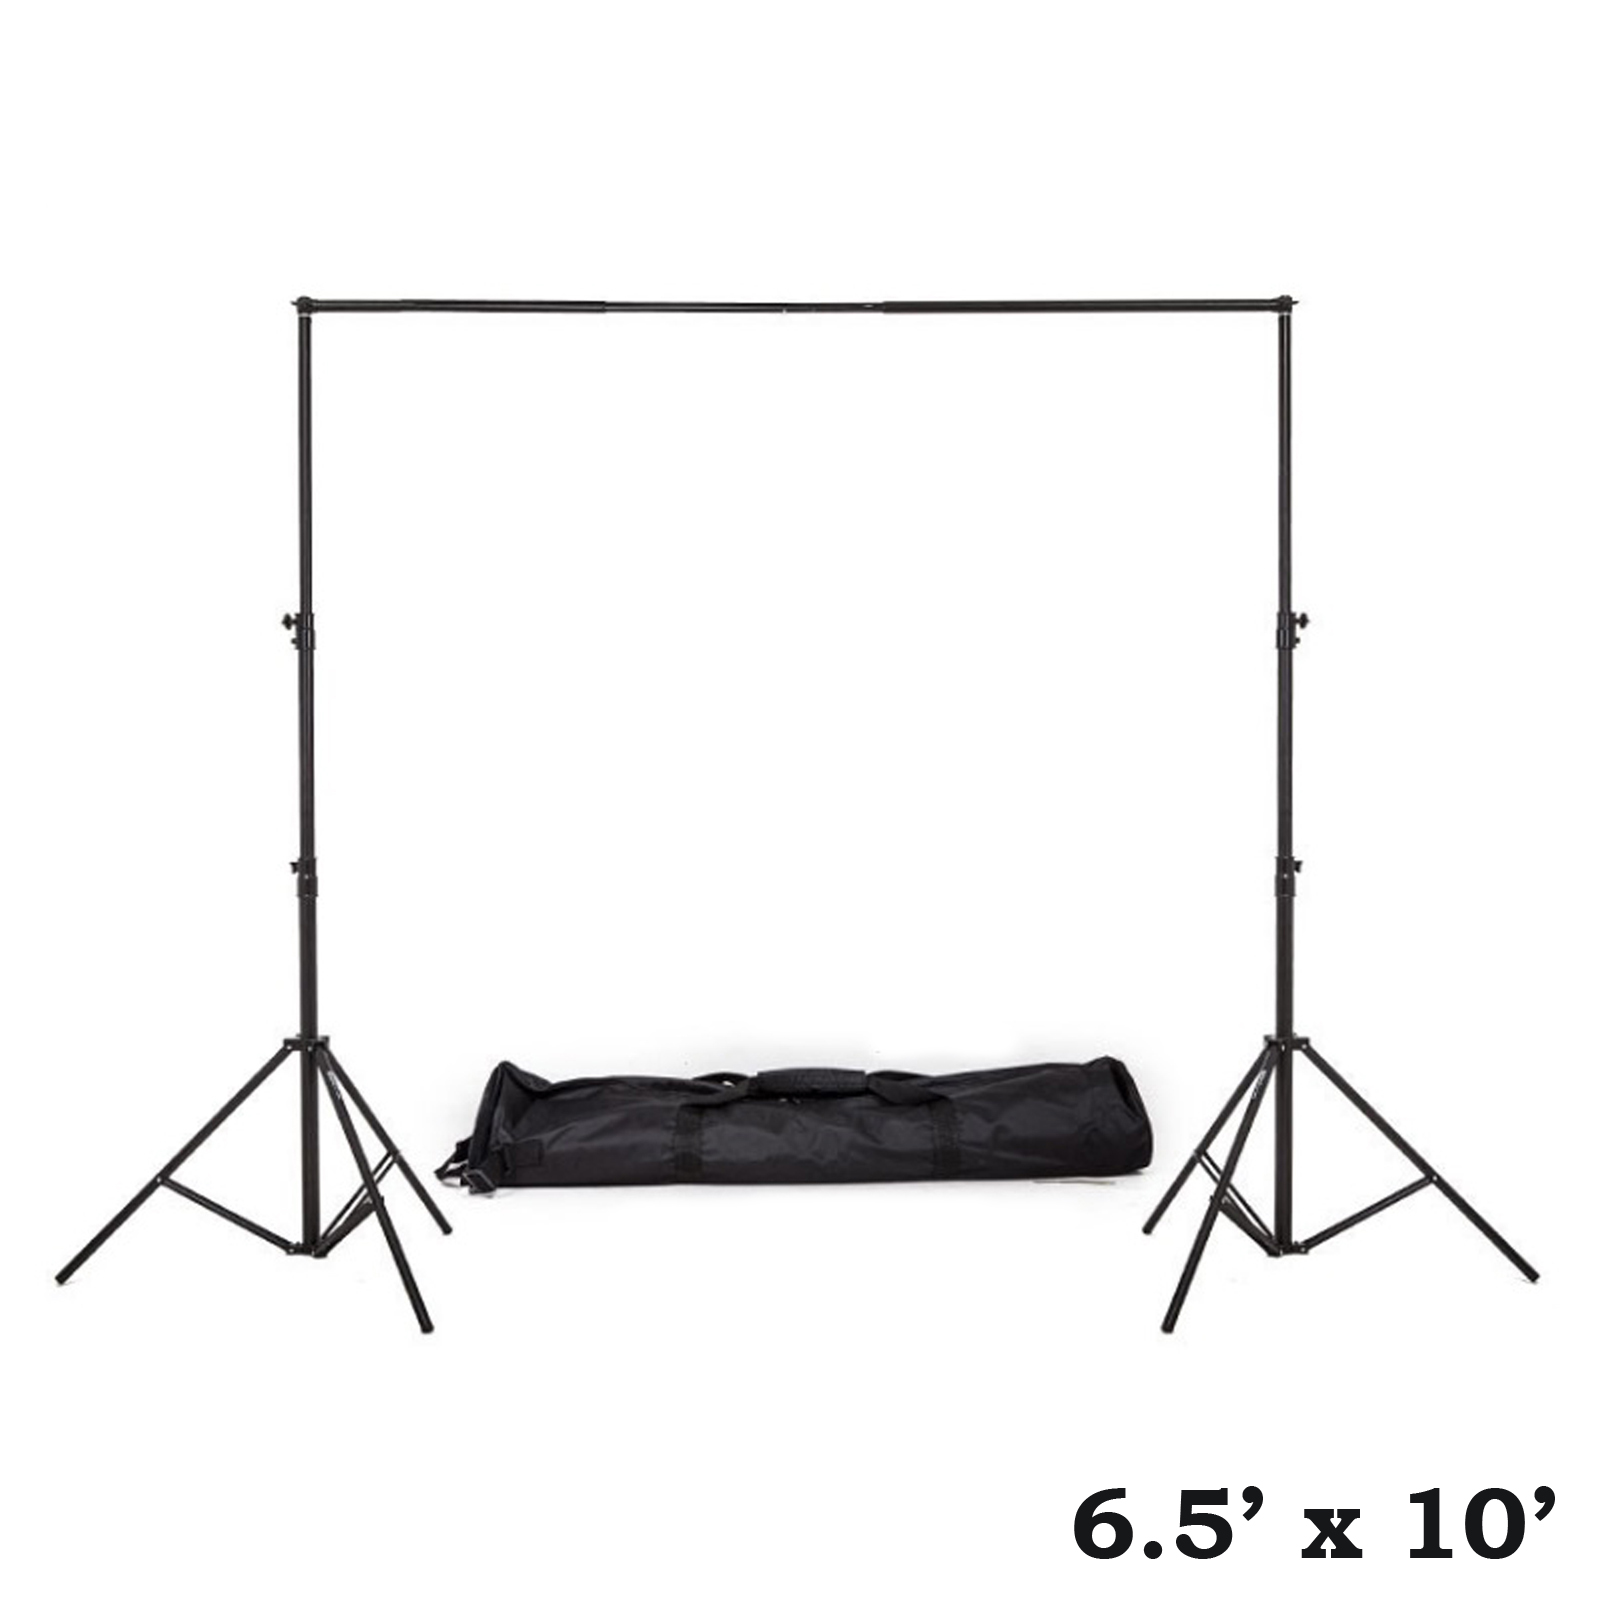 accessories drapes kits pipe and online drape kit